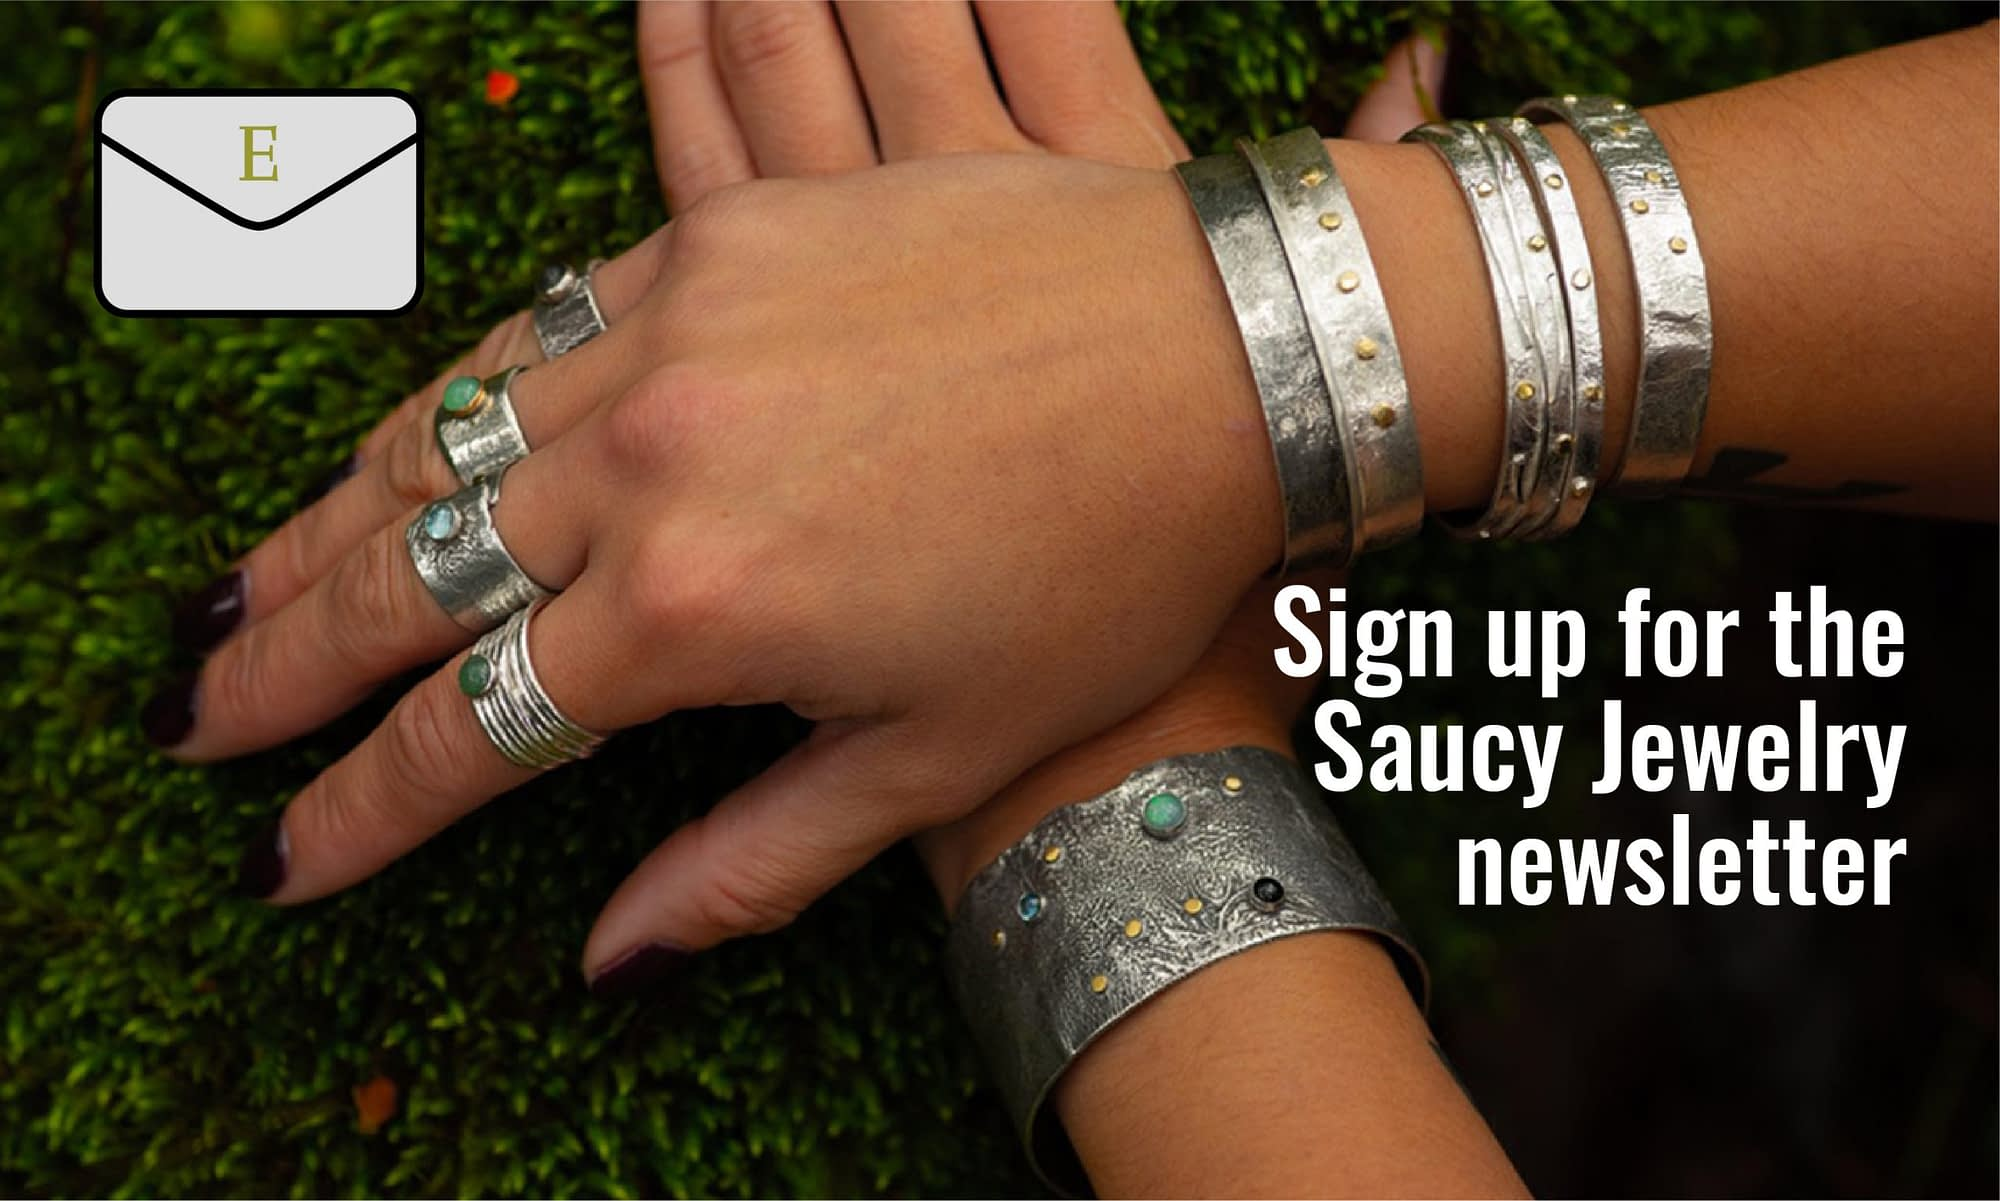 Newsletter signup image with jewelry